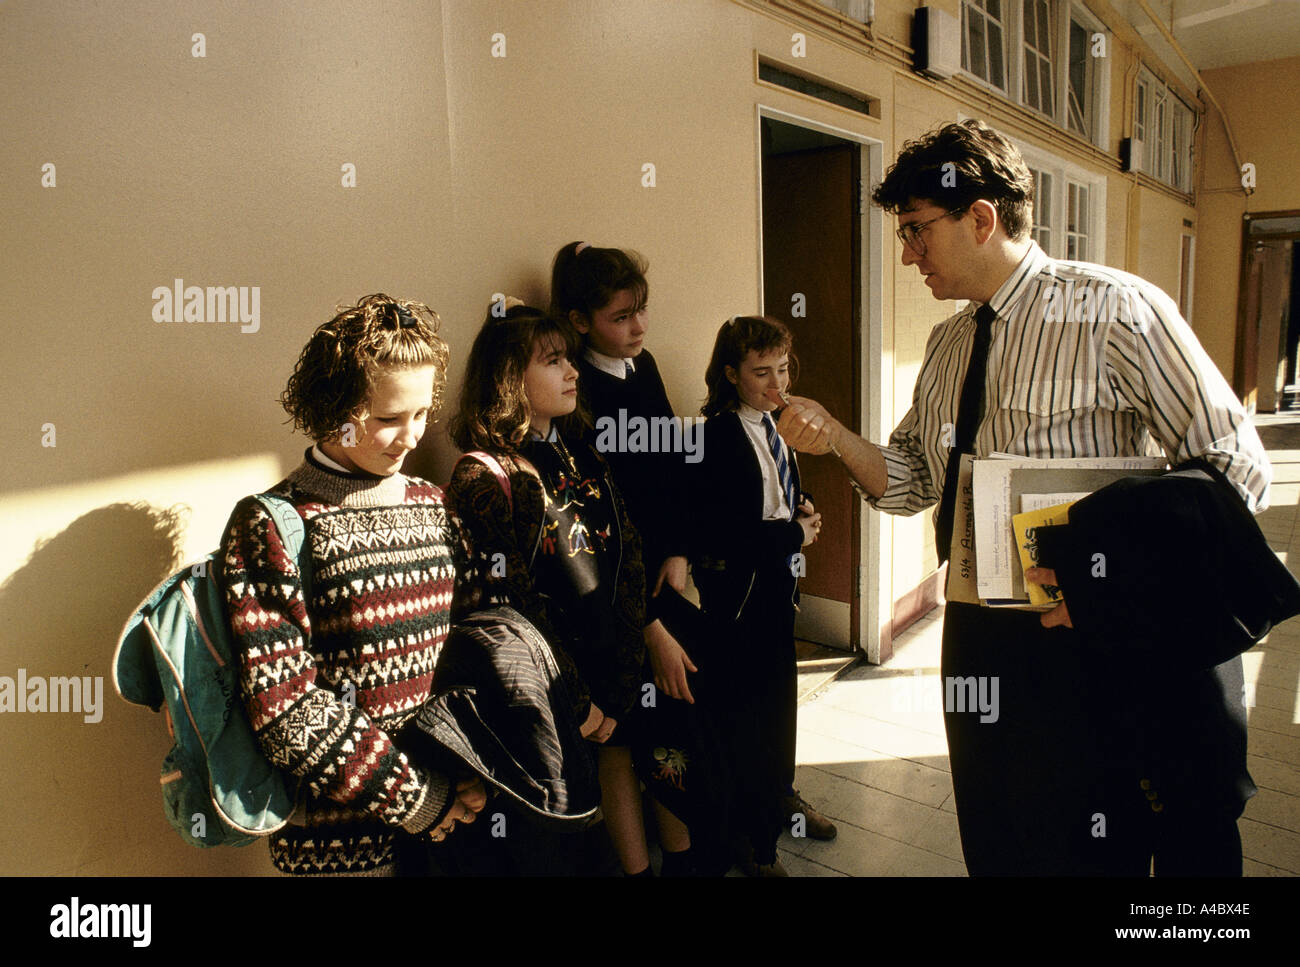 HOLYROOD SECONDARY SCHOOL CHILDREN, TALKING WITH A TEACHER GLASGOW,5/1990 - Stock Image